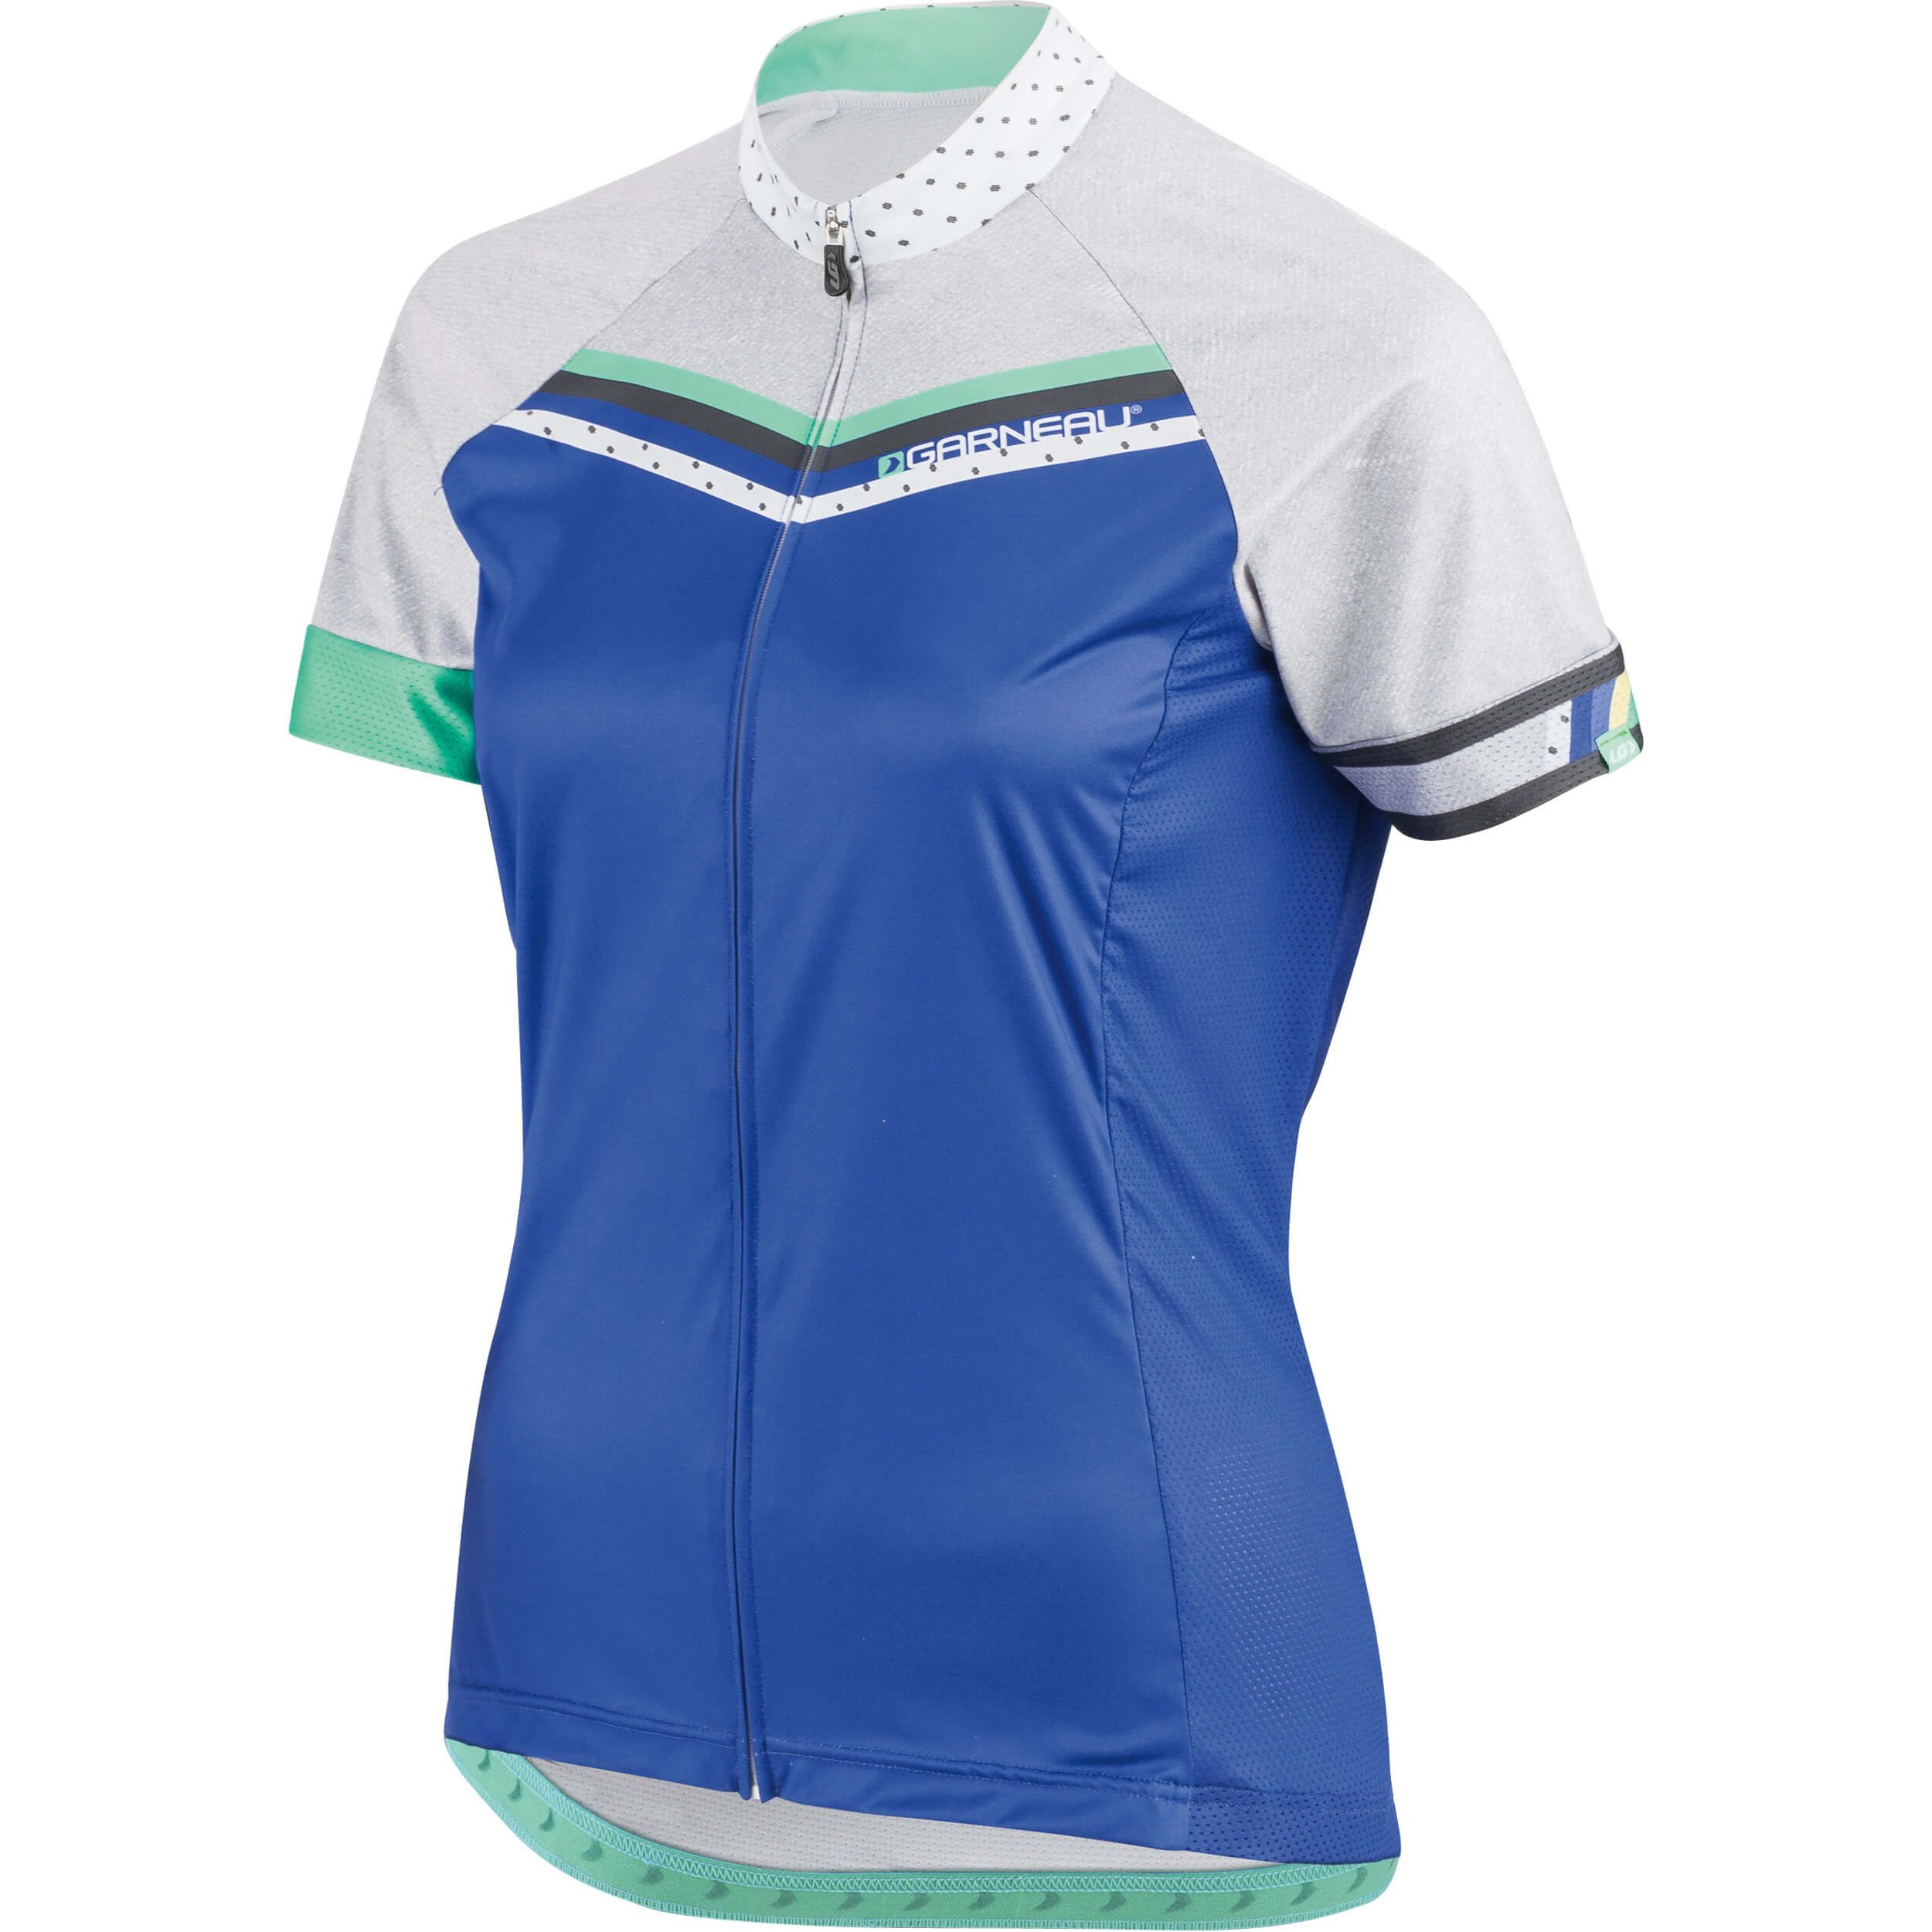 82d0b221ae2256 Women s Equipe Cycling Jersey. Tap to expand